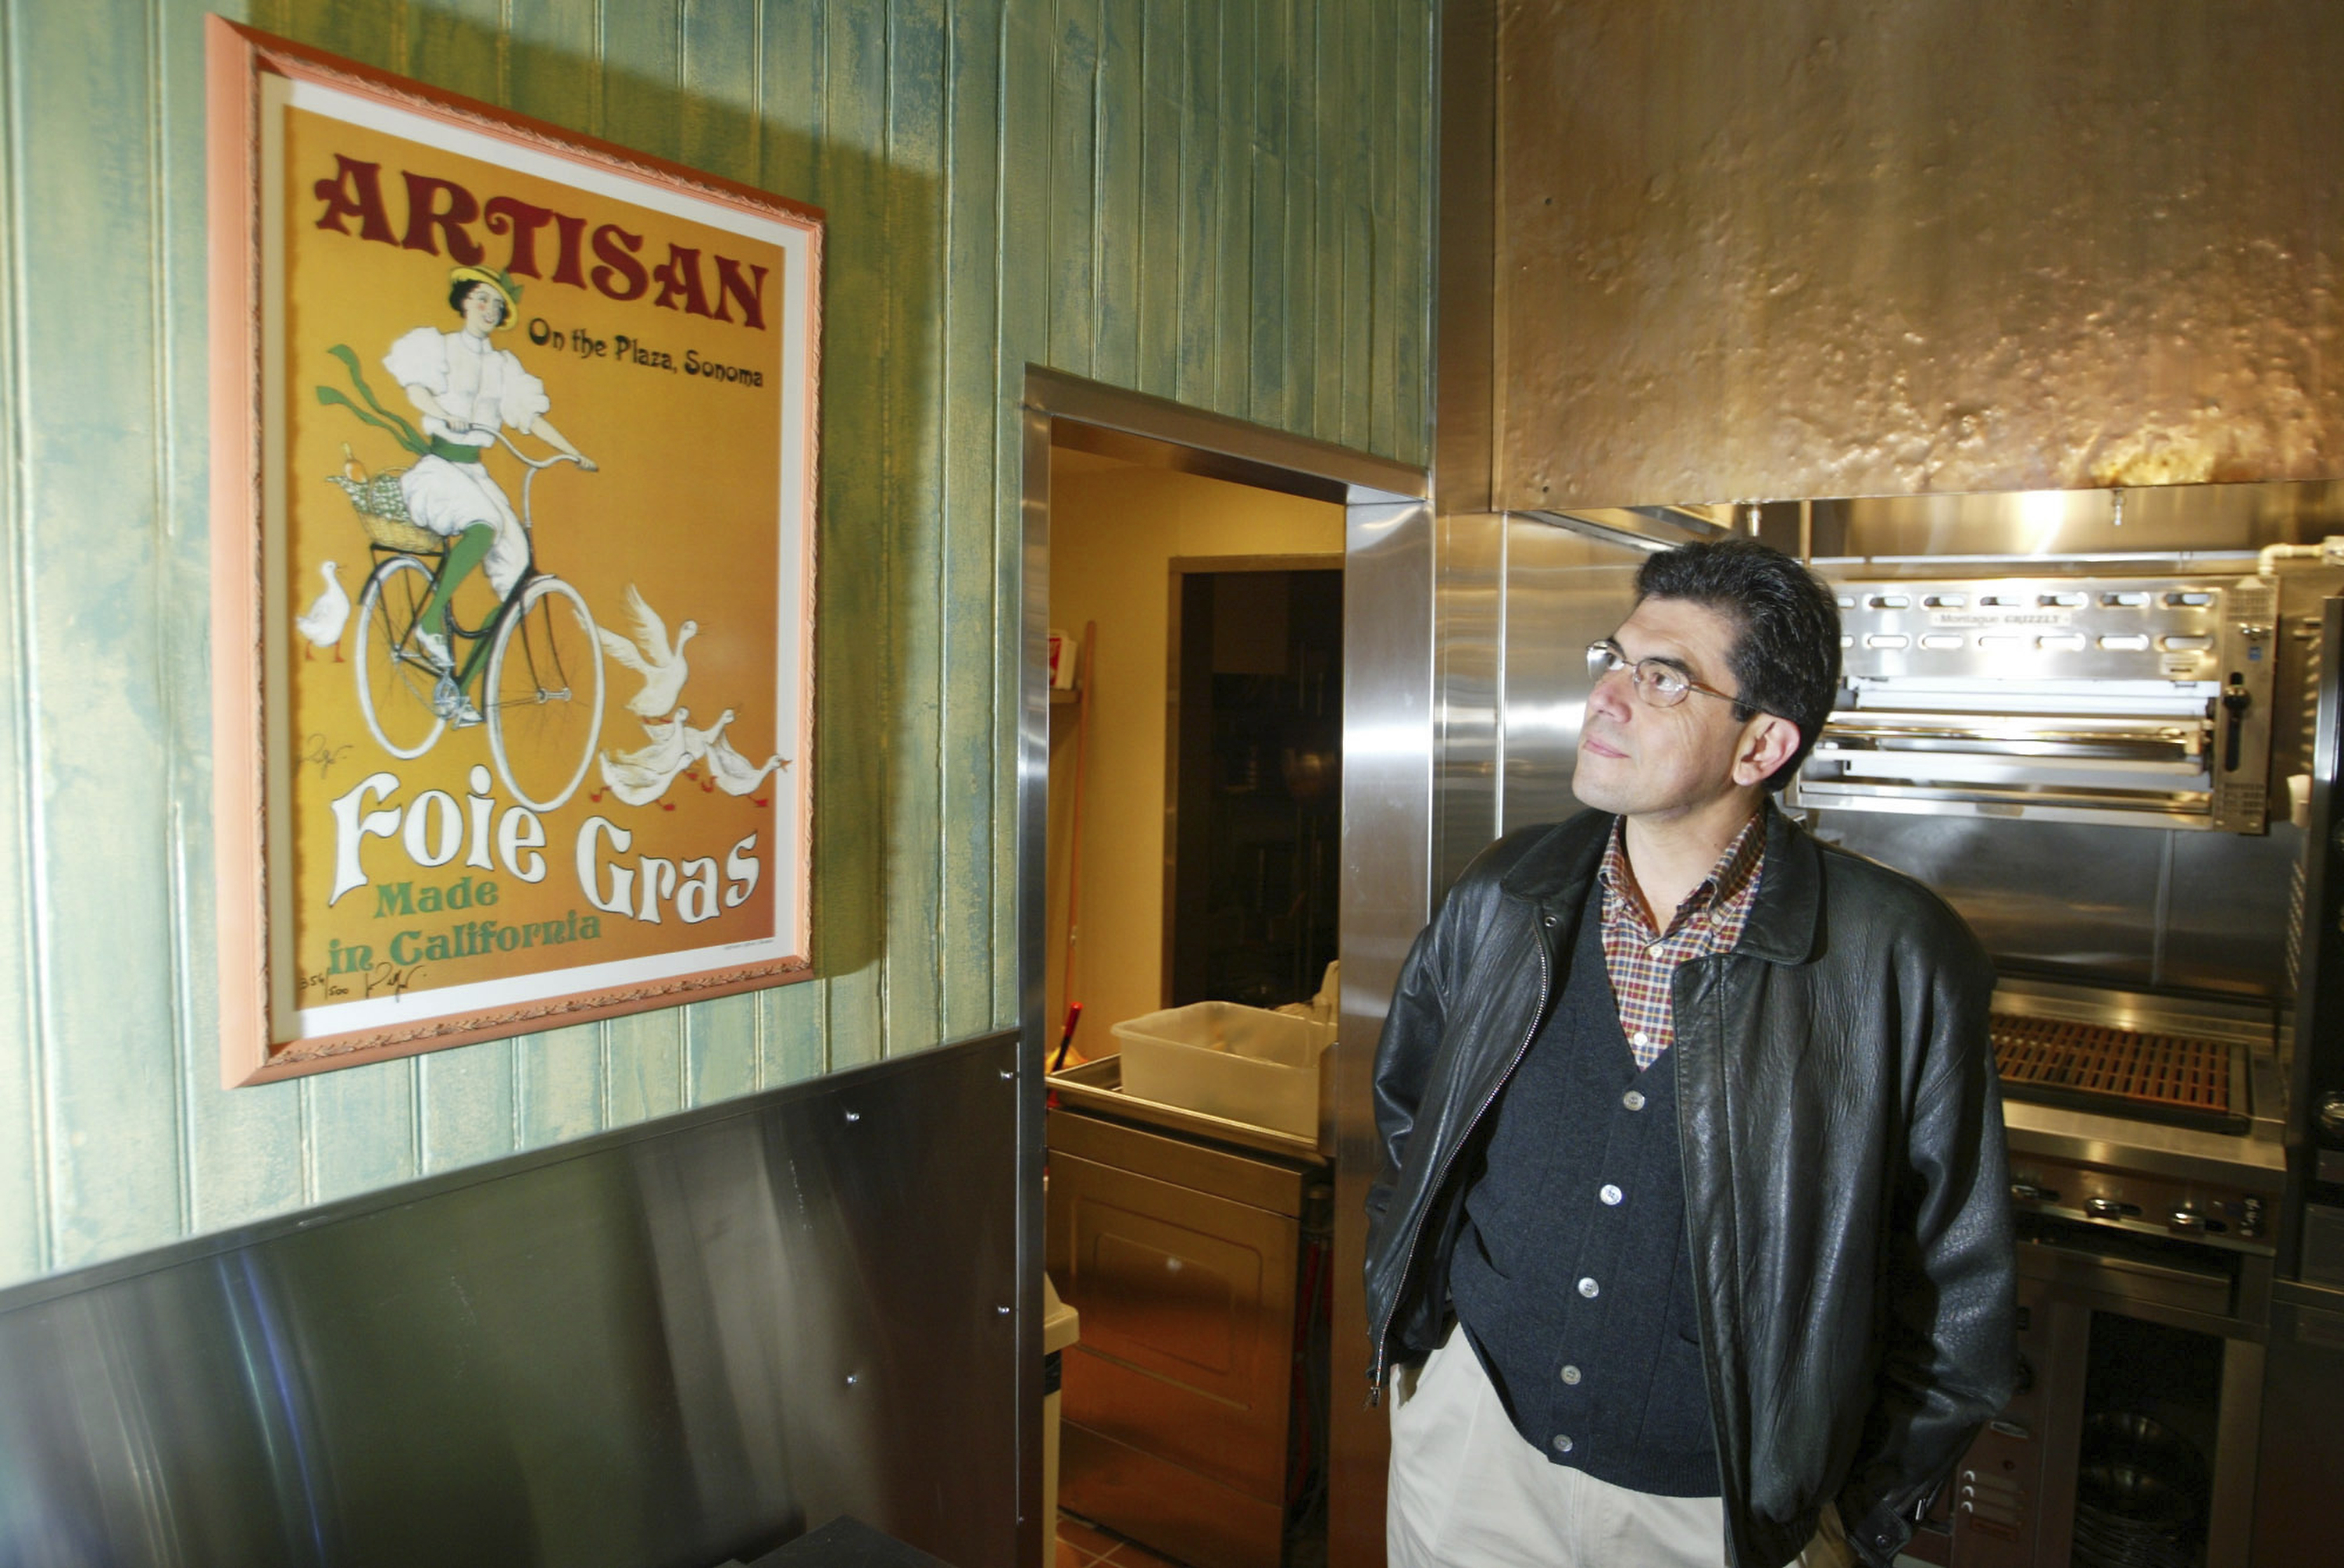 FILE - In this Dec. 9, 2003, file photo, Guillermo Gonzalez, owner of Sonoma Foie Gras, stands in the kitchen of his restaurant, Sonoma Saveurs in Sonoma, Calif. (AP Photo/Eric Risberg, File)